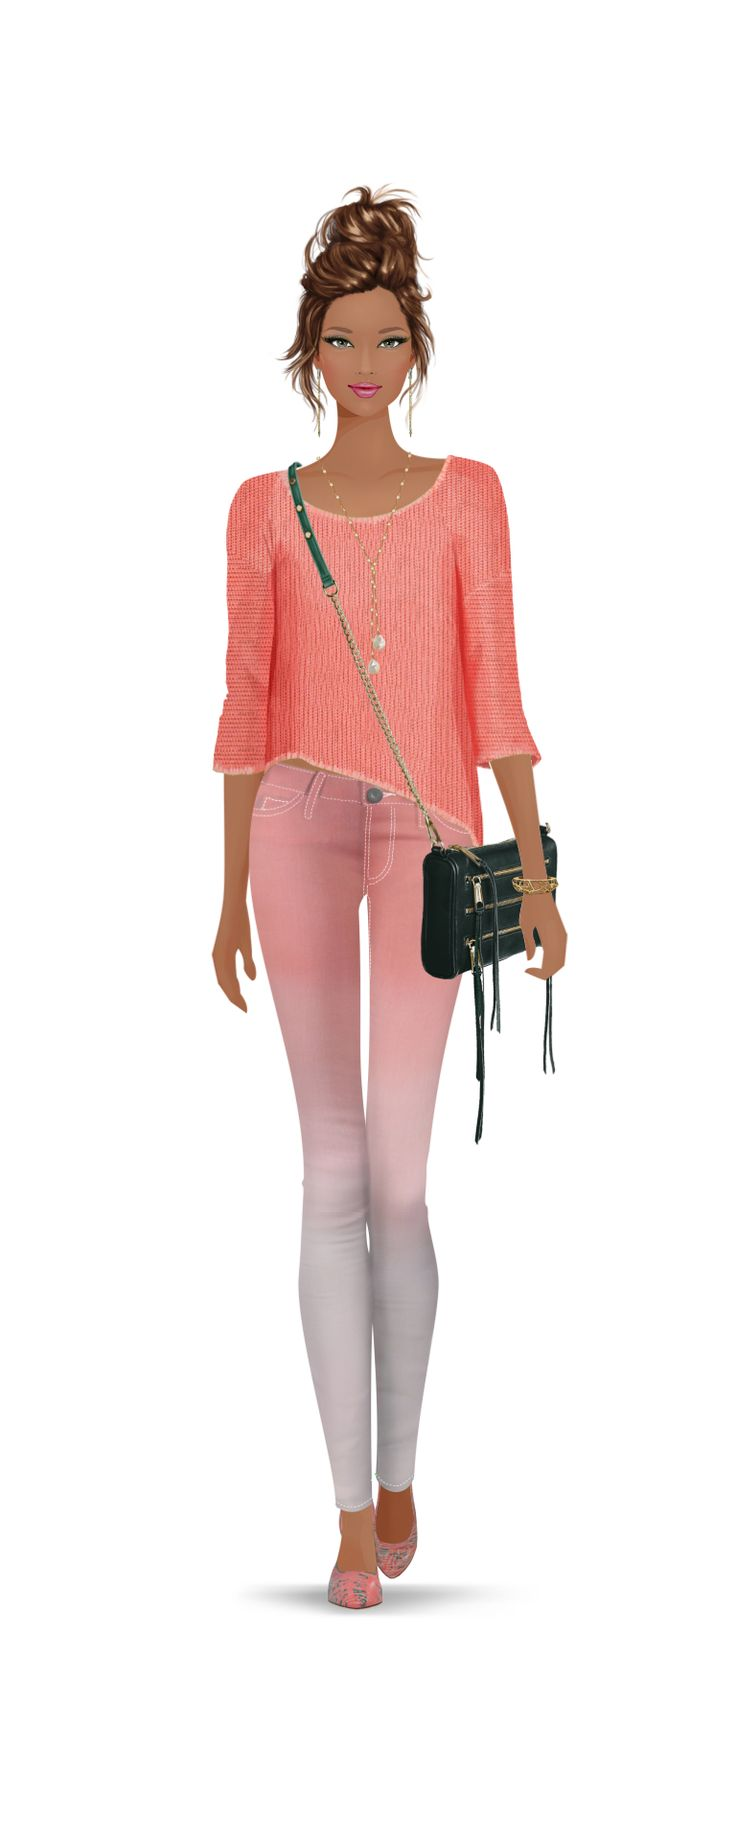 Amazing Barbie Girl / Spettacolare ragazza come una Barbie - by Covet Fashion Game